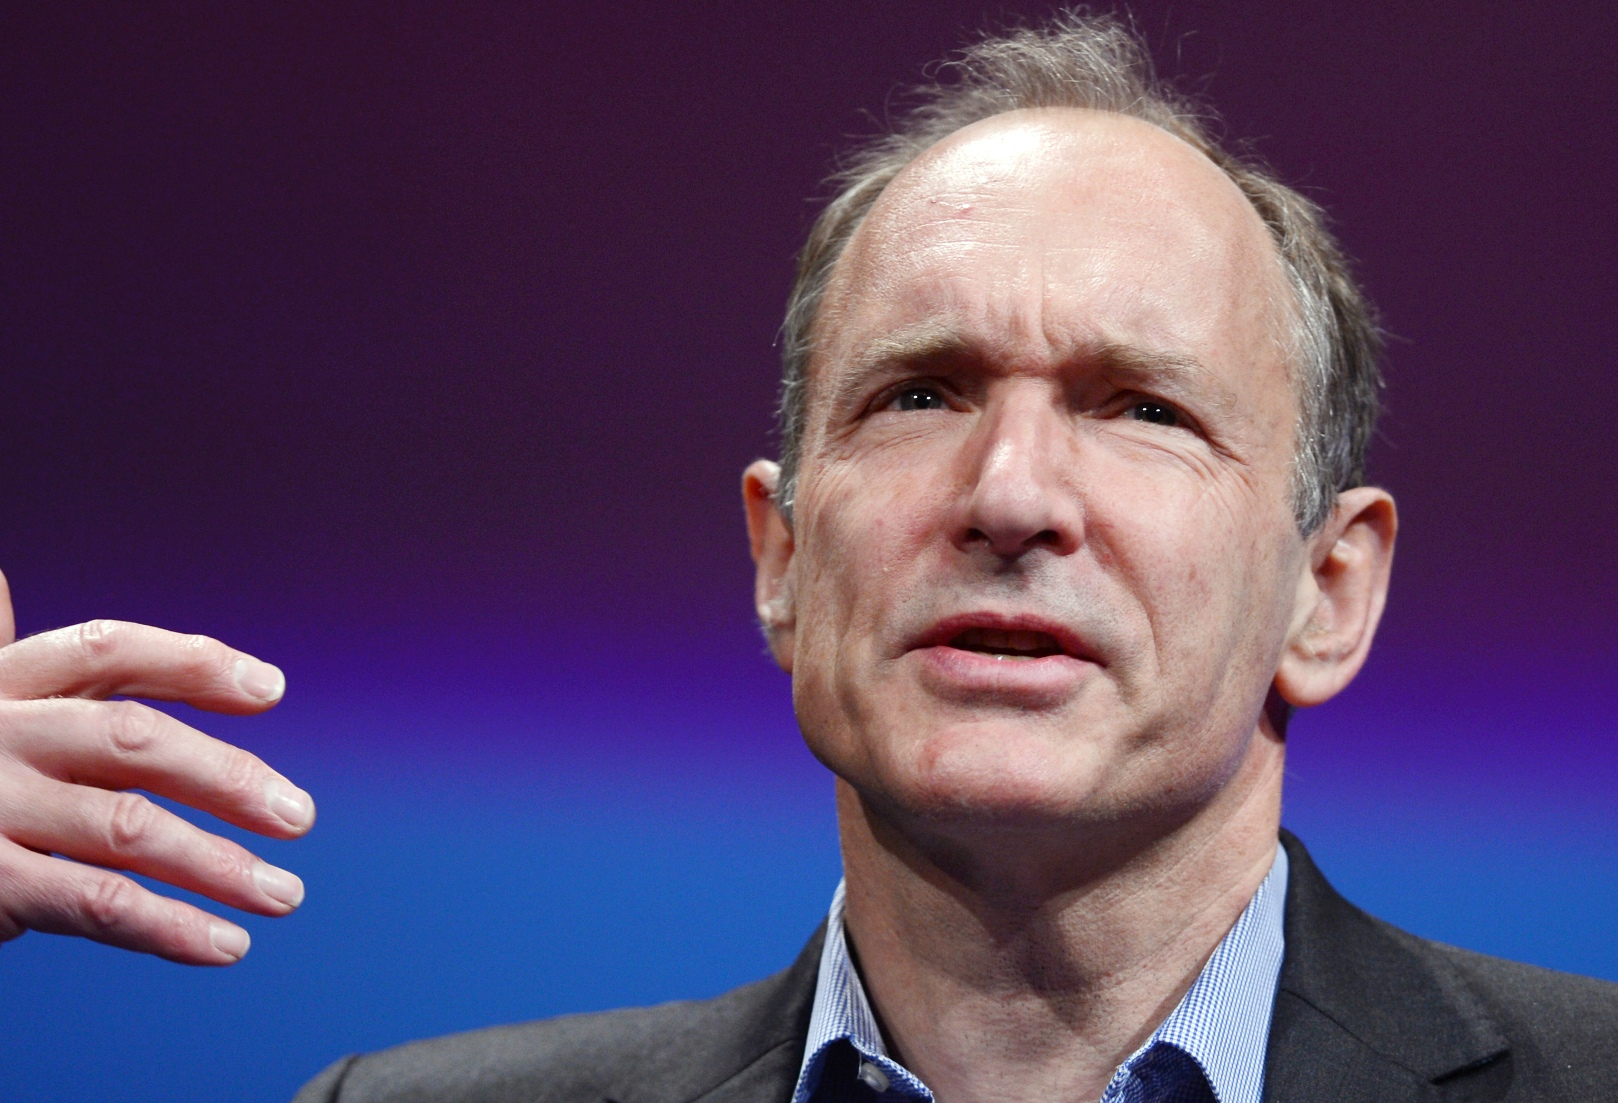 The UK taps Facebook and Microsoft for ICT teacher training, to help produce the next Tim Berners-Lee ...